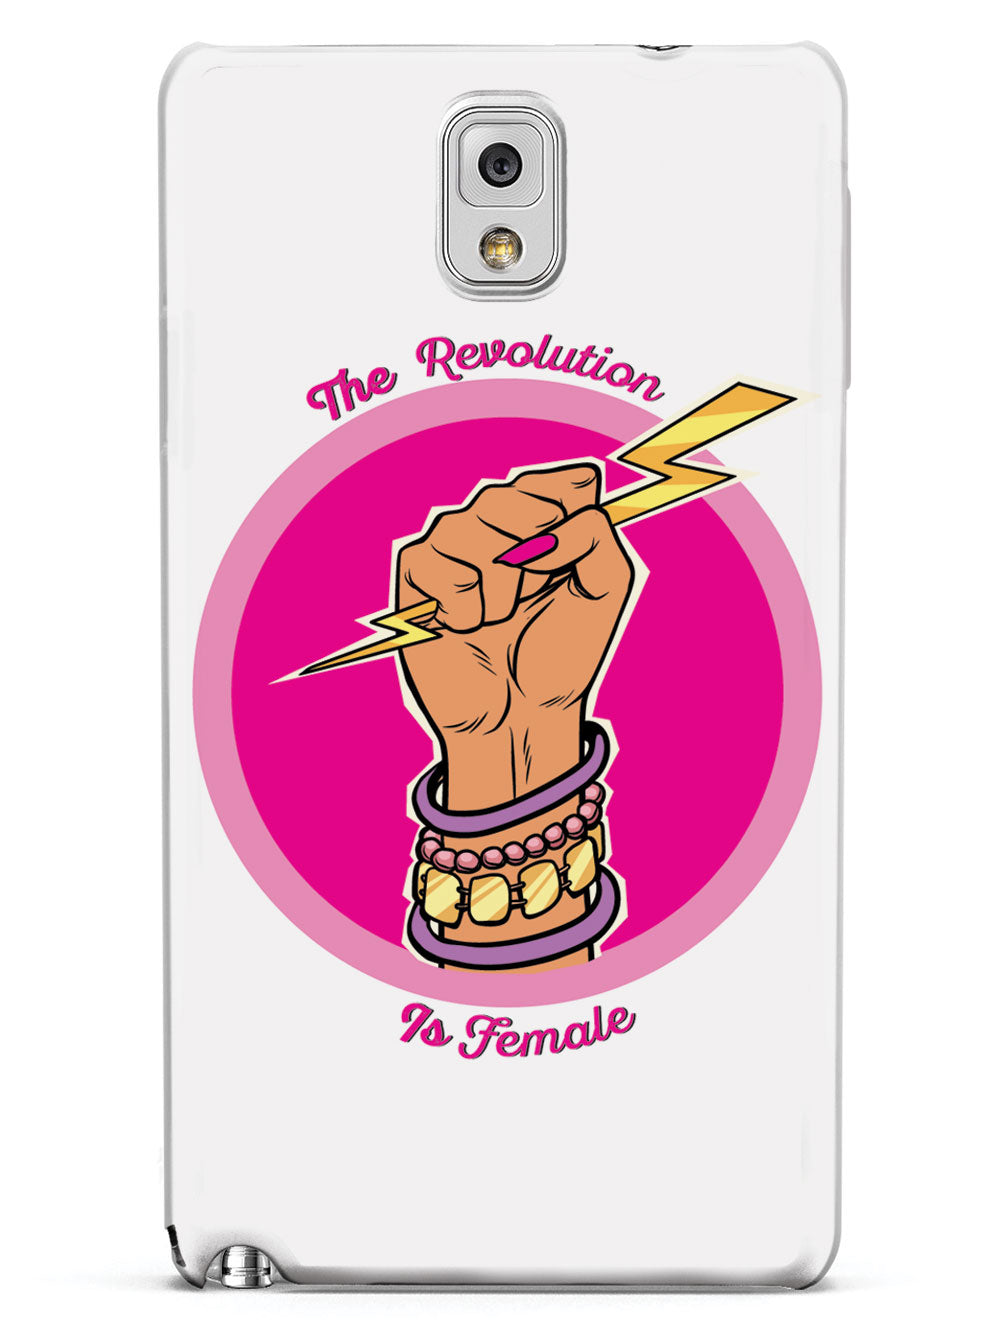 The Revolution Is Female - White Case